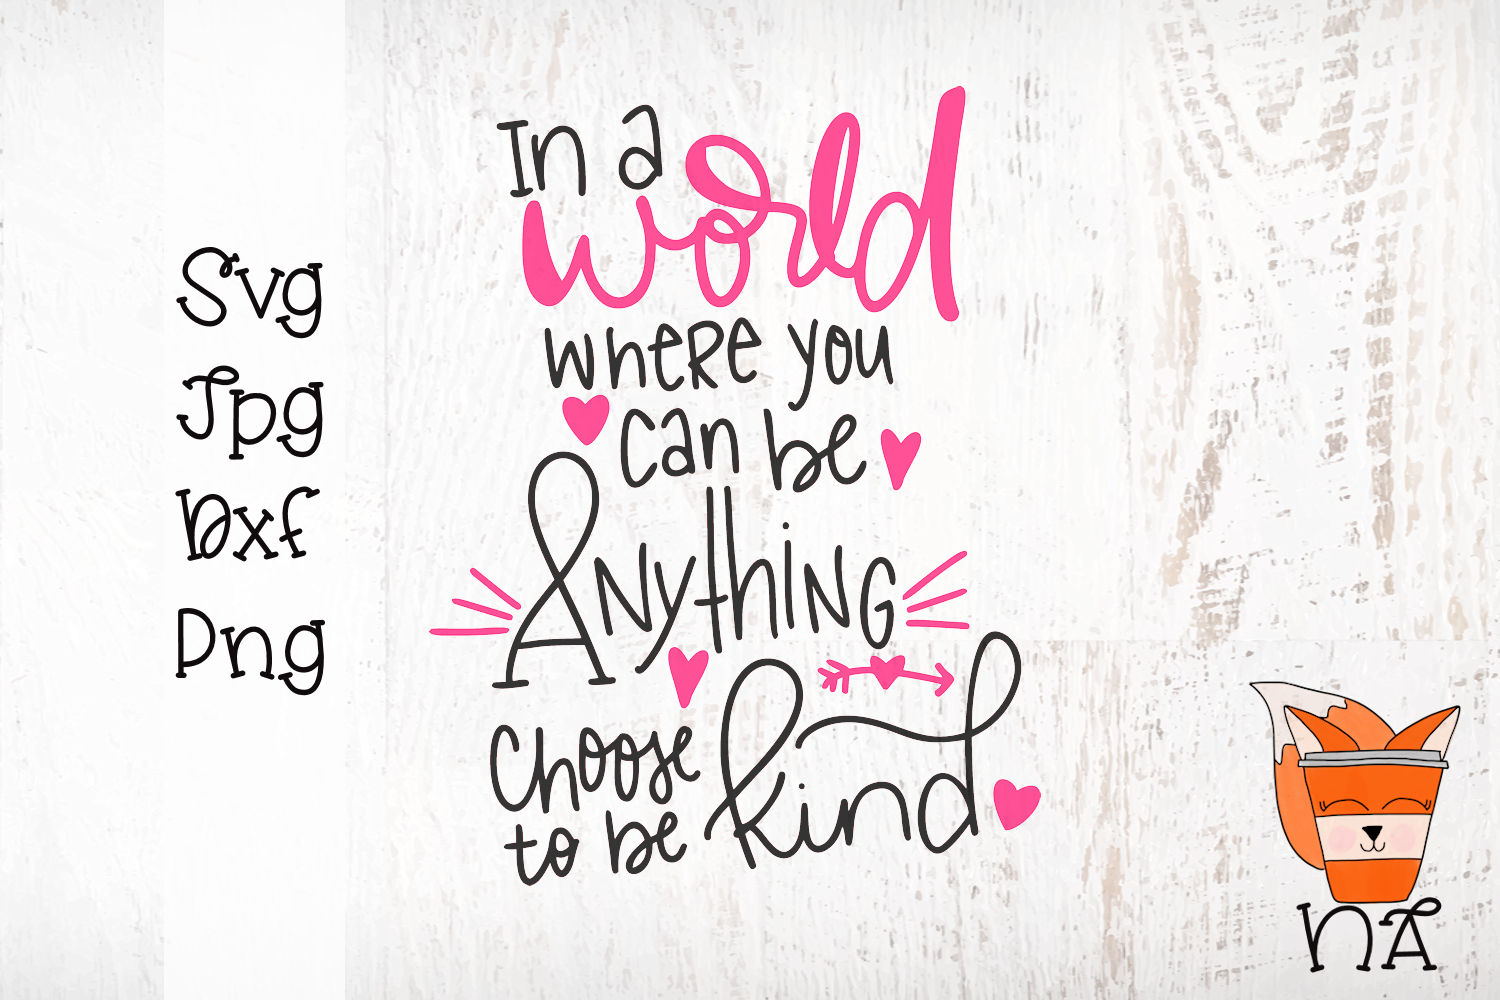 In A World Where You Can Be Anything Choose To Be Kind - SVG example image 2